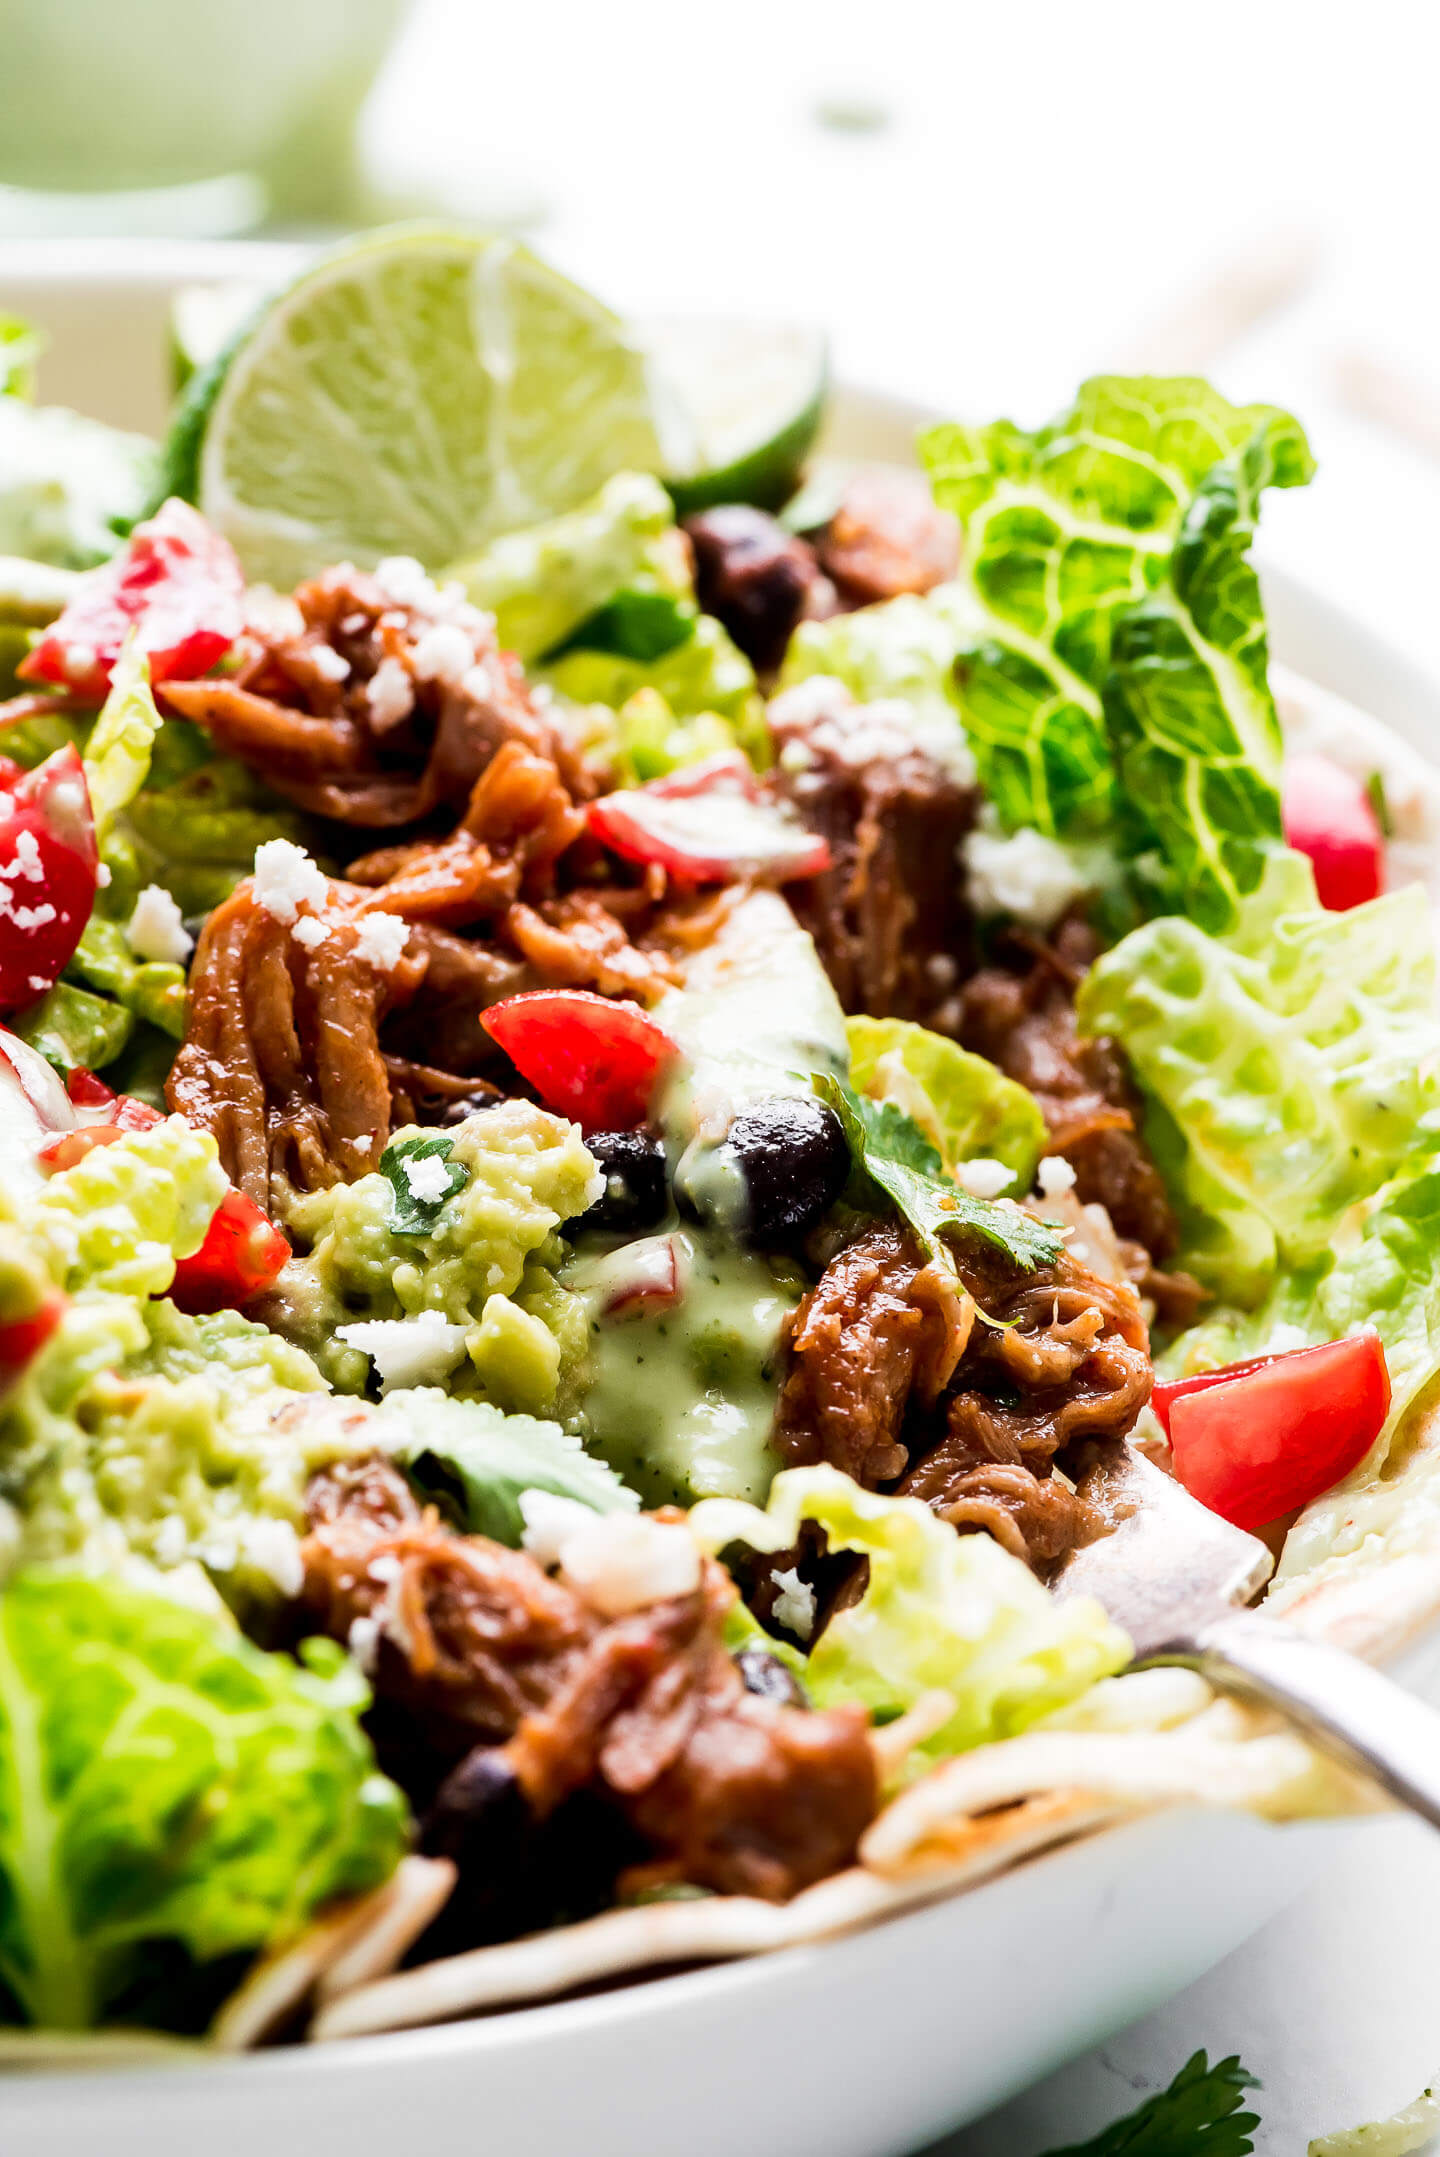 A close-up shot of a fork full of Cafe Rio Salad with pork, beans, guacamole, tomatoes, creamy dressing, and cilantro.